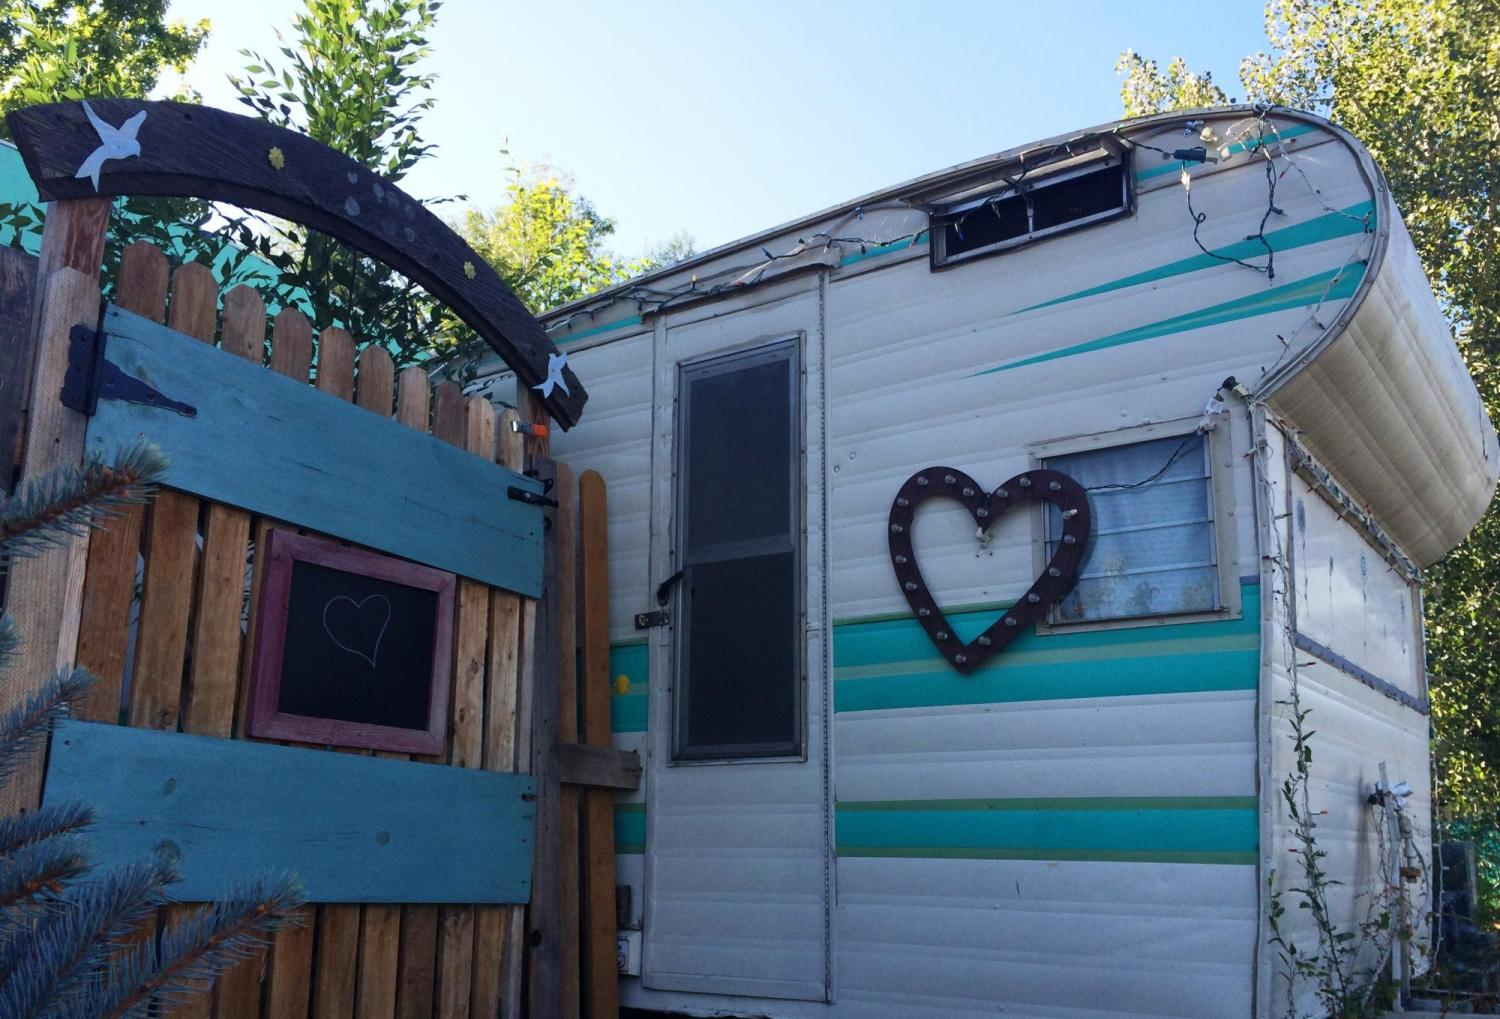 An older RV with a heart on it next to a wooden fence.